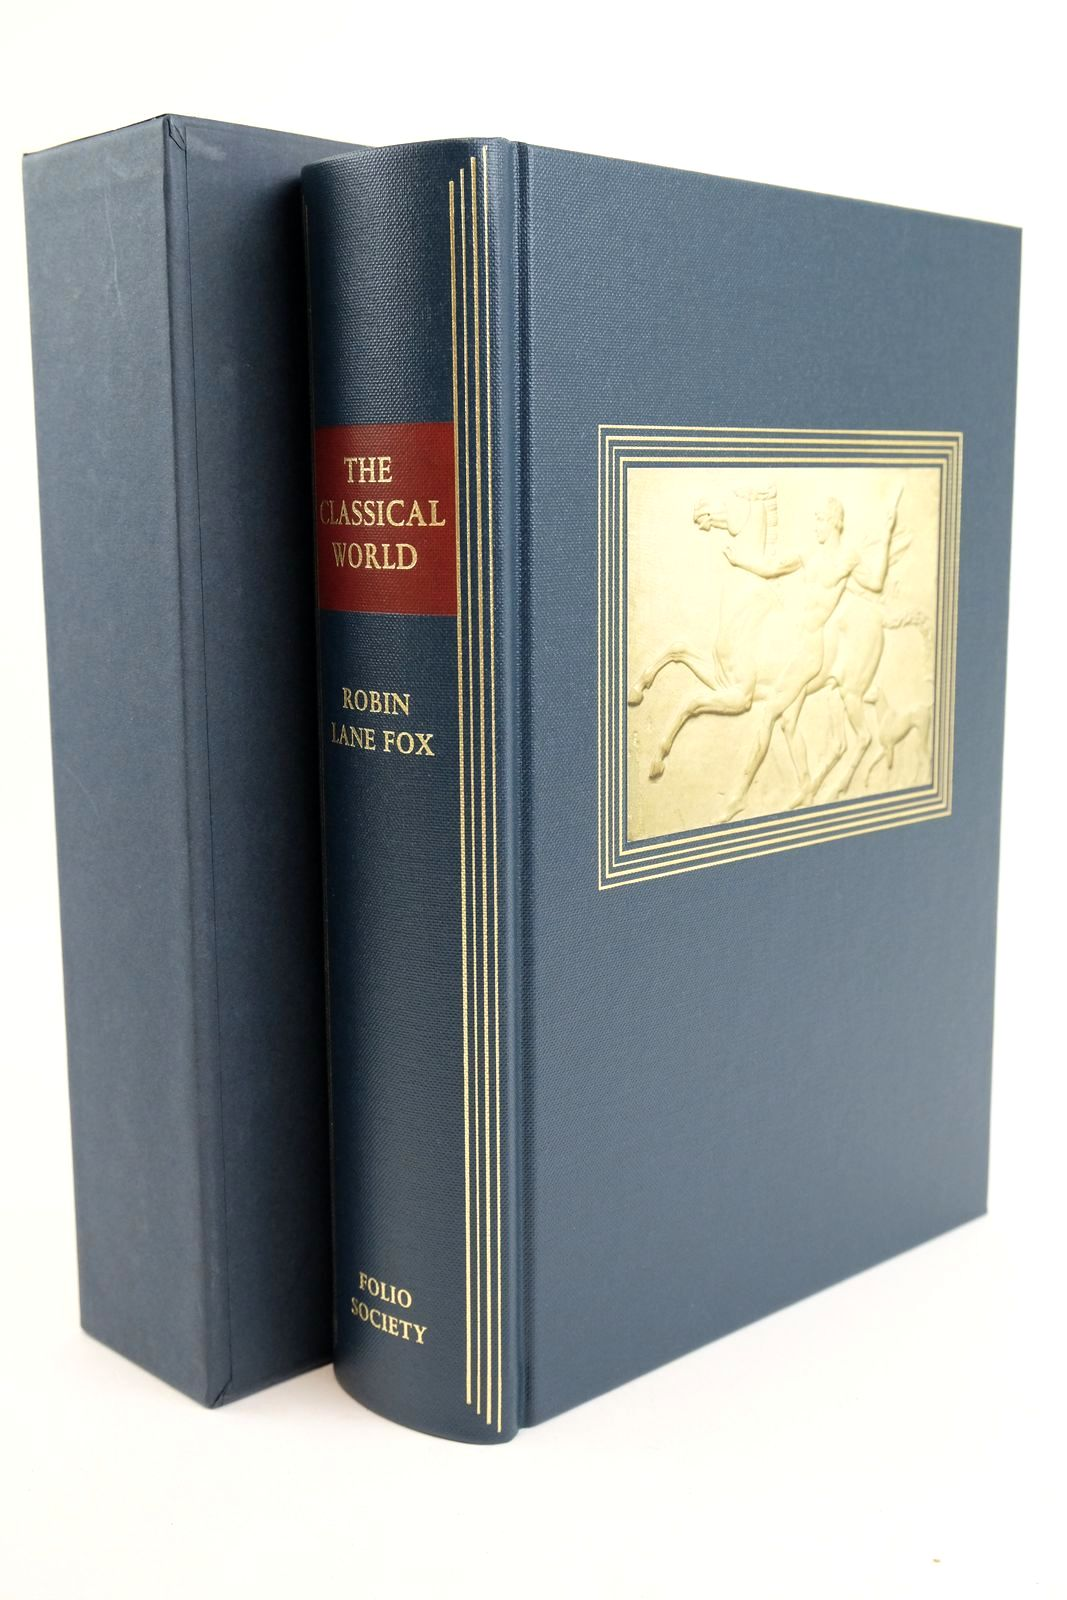 Photo of THE CLASSICAL WORLD: AN EPIC HISTORY OF GREECE AND ROME written by Fox, Robin Lane published by Folio Society (STOCK CODE: 1318898)  for sale by Stella & Rose's Books